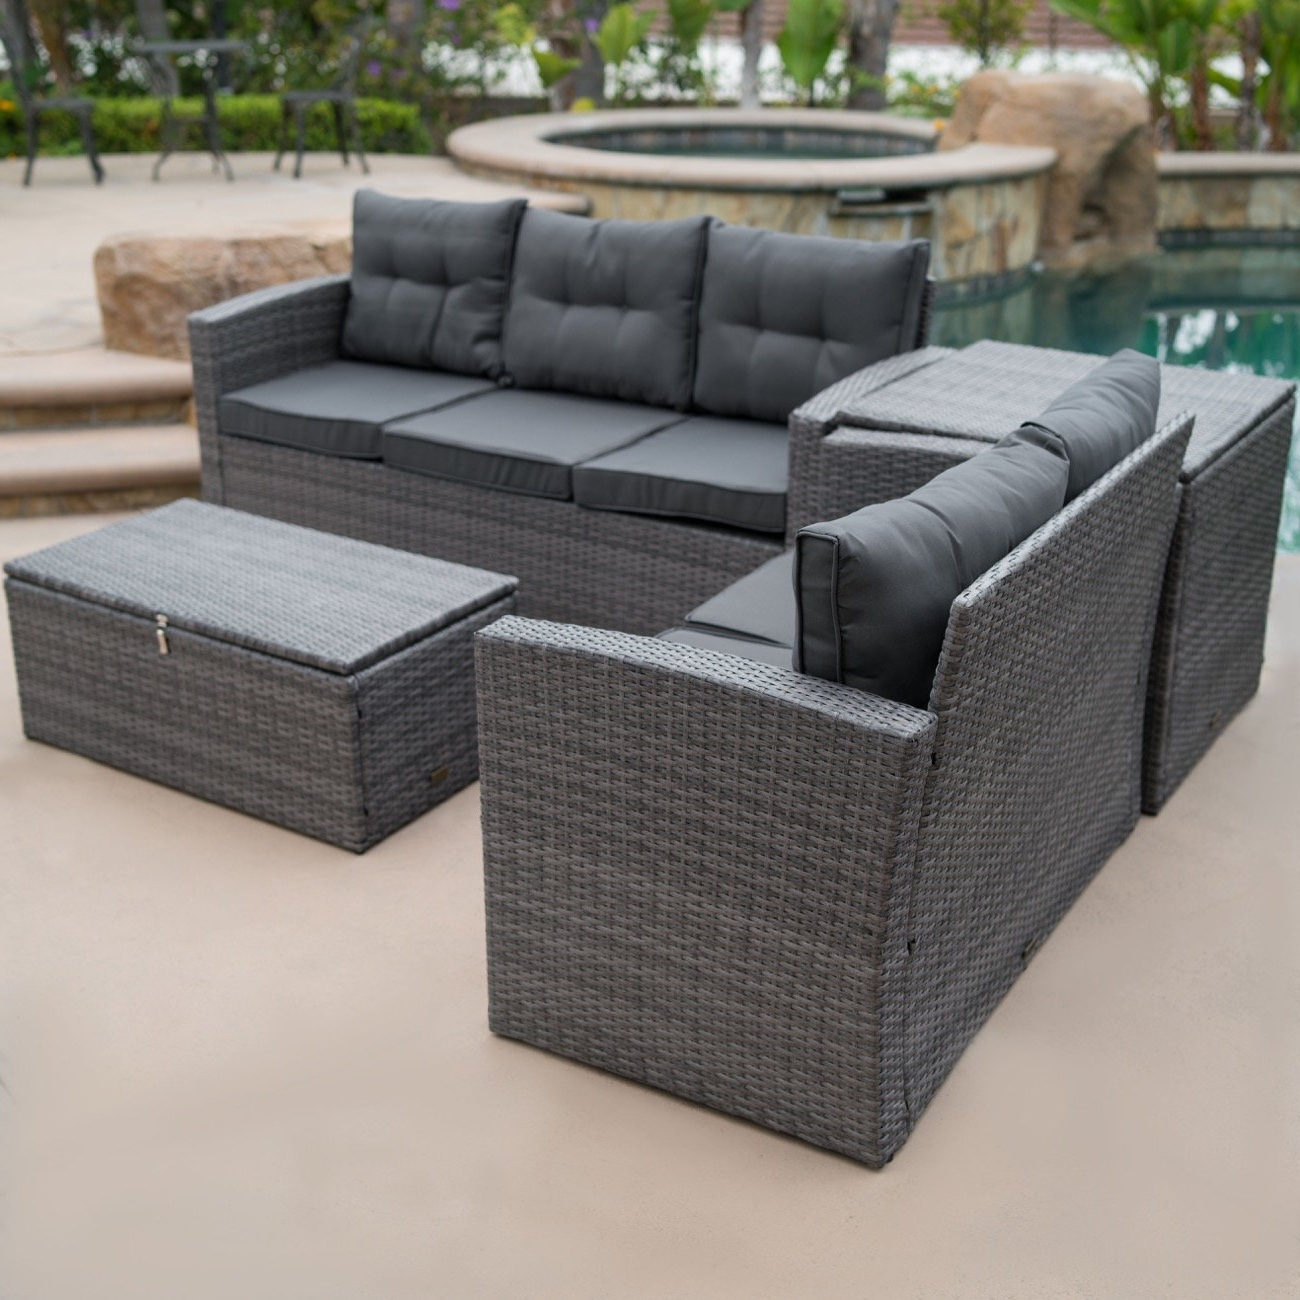 Rowley Patio Sofas Set With Cushions Throughout 2019 Rowley Patio Sofa Set With Cushions (View 1 of 20)